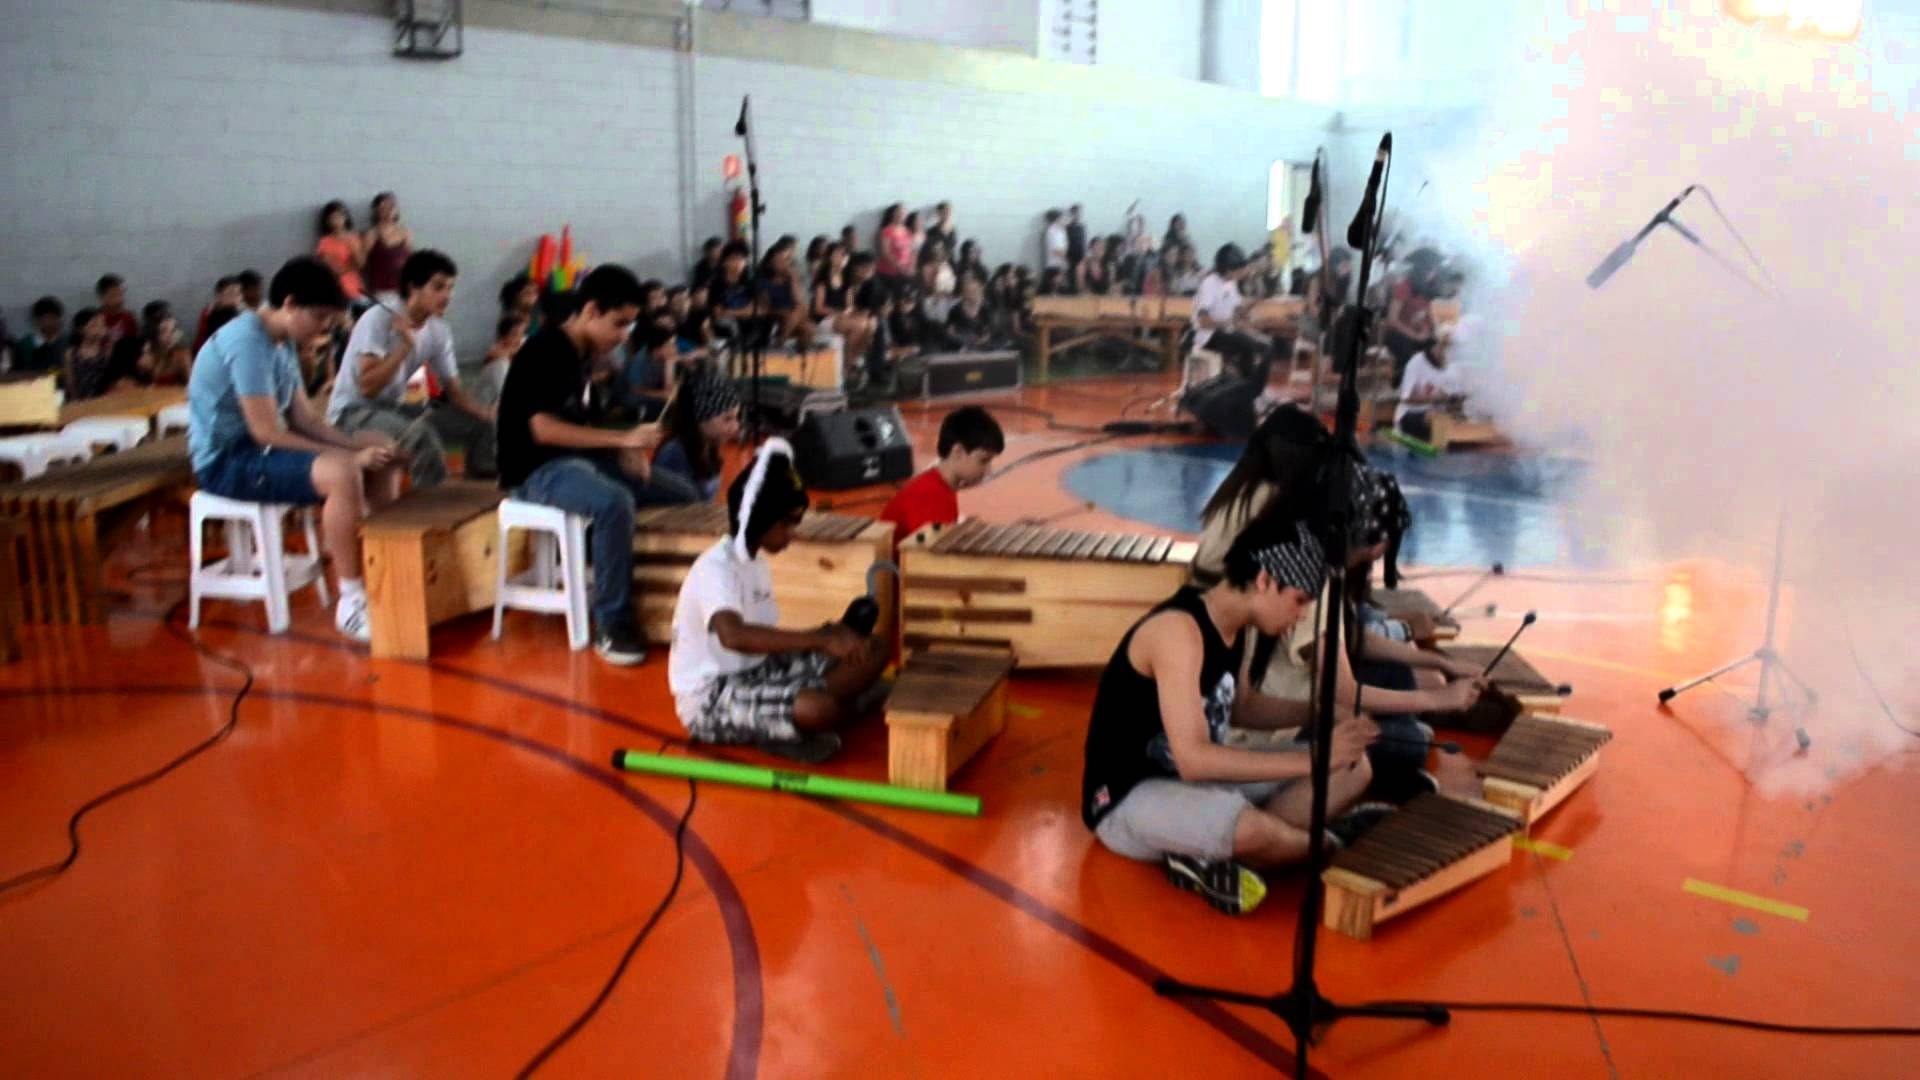 Pirates of Caribbean for Orff Instruments - Escola Germinare 8ºC - arr, ...